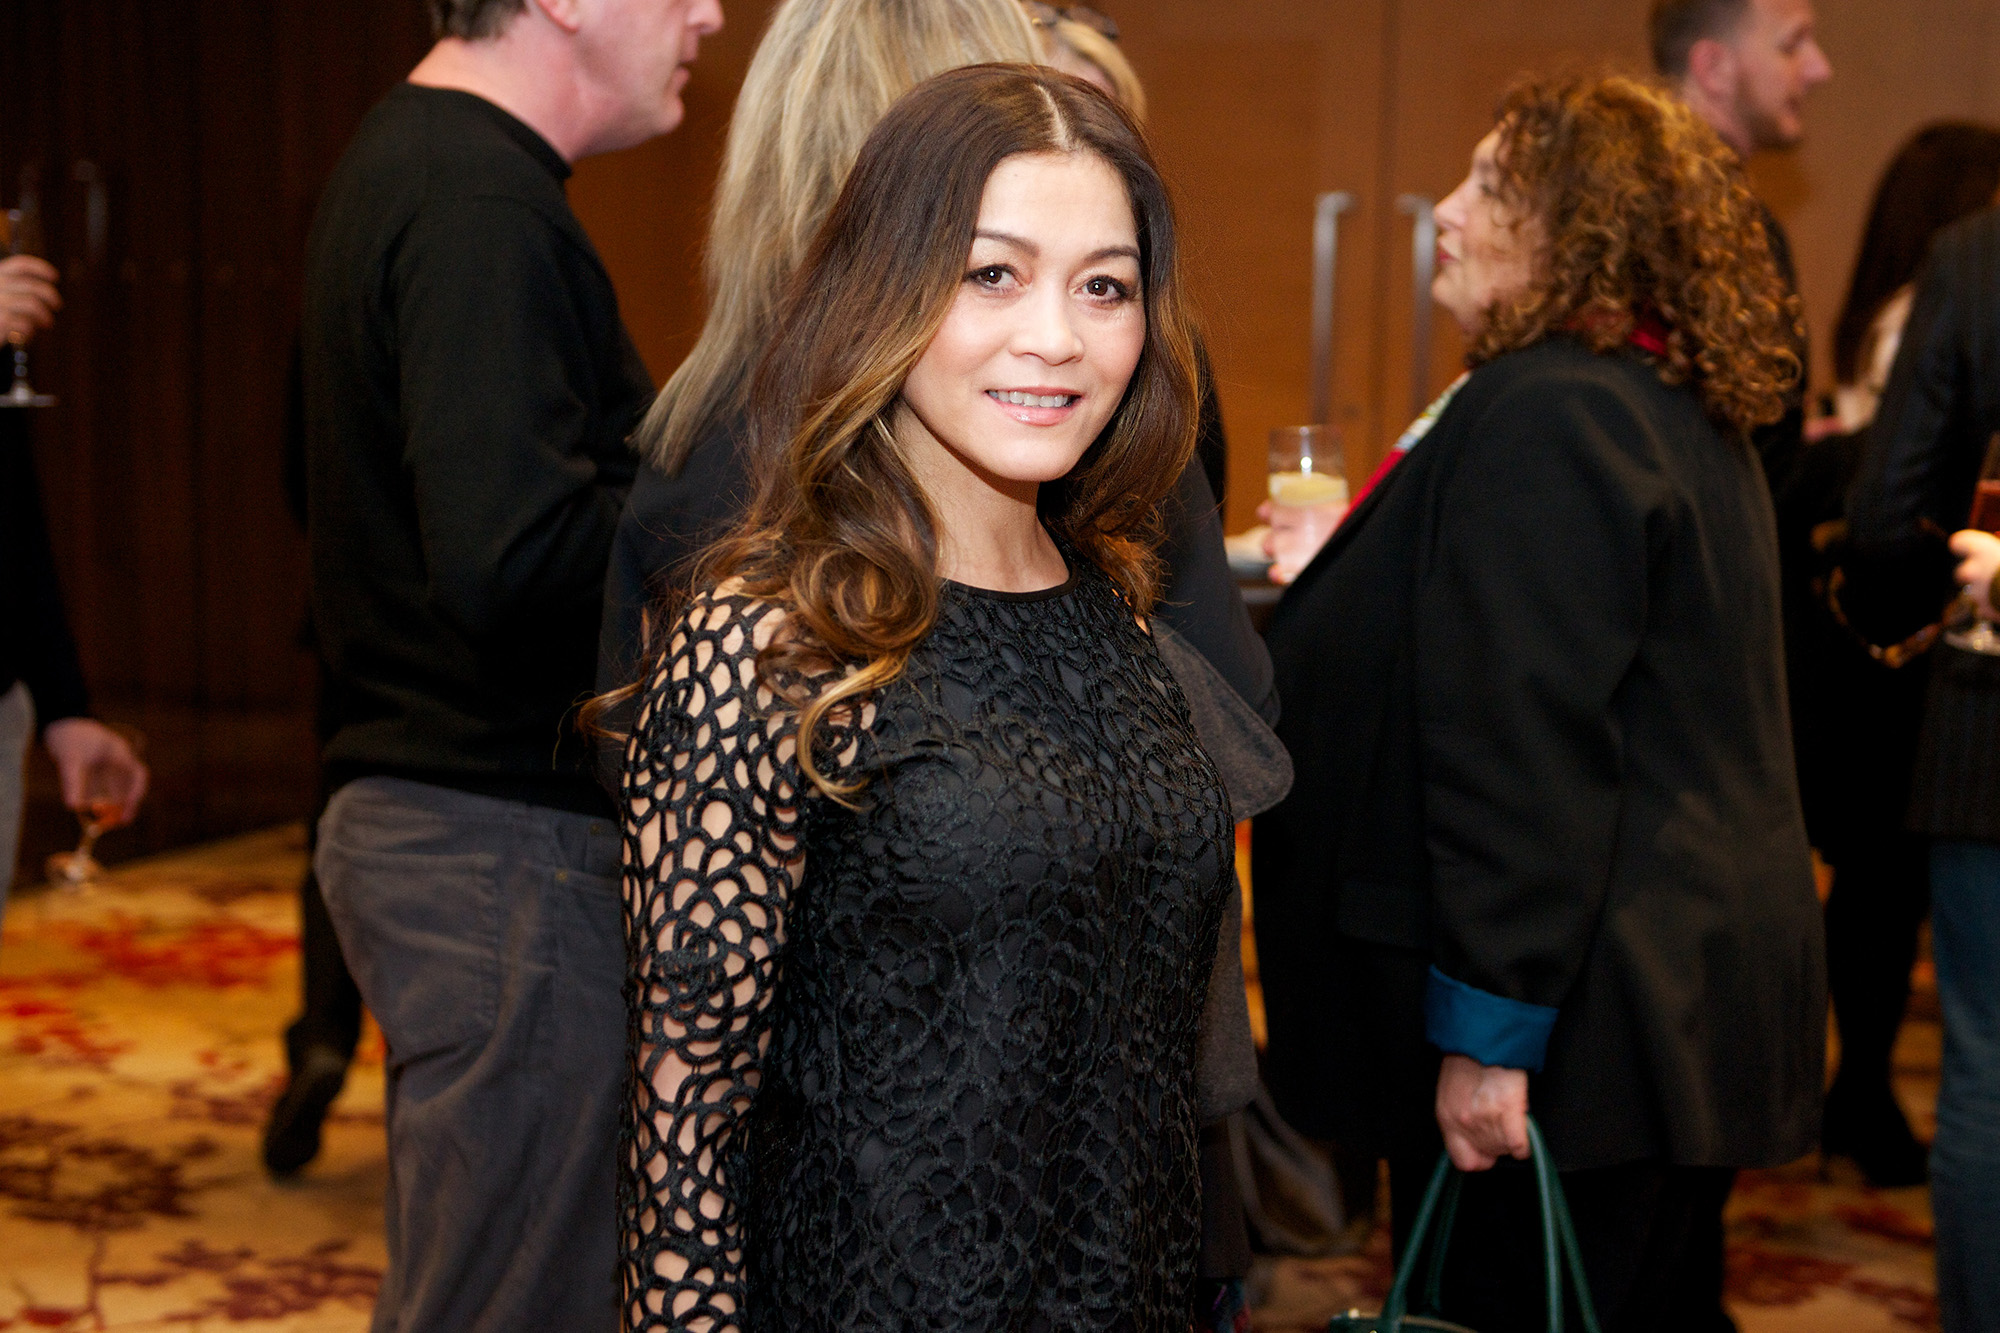 RE_Margolis_Sheldrick_Screening 67-sm.jpg